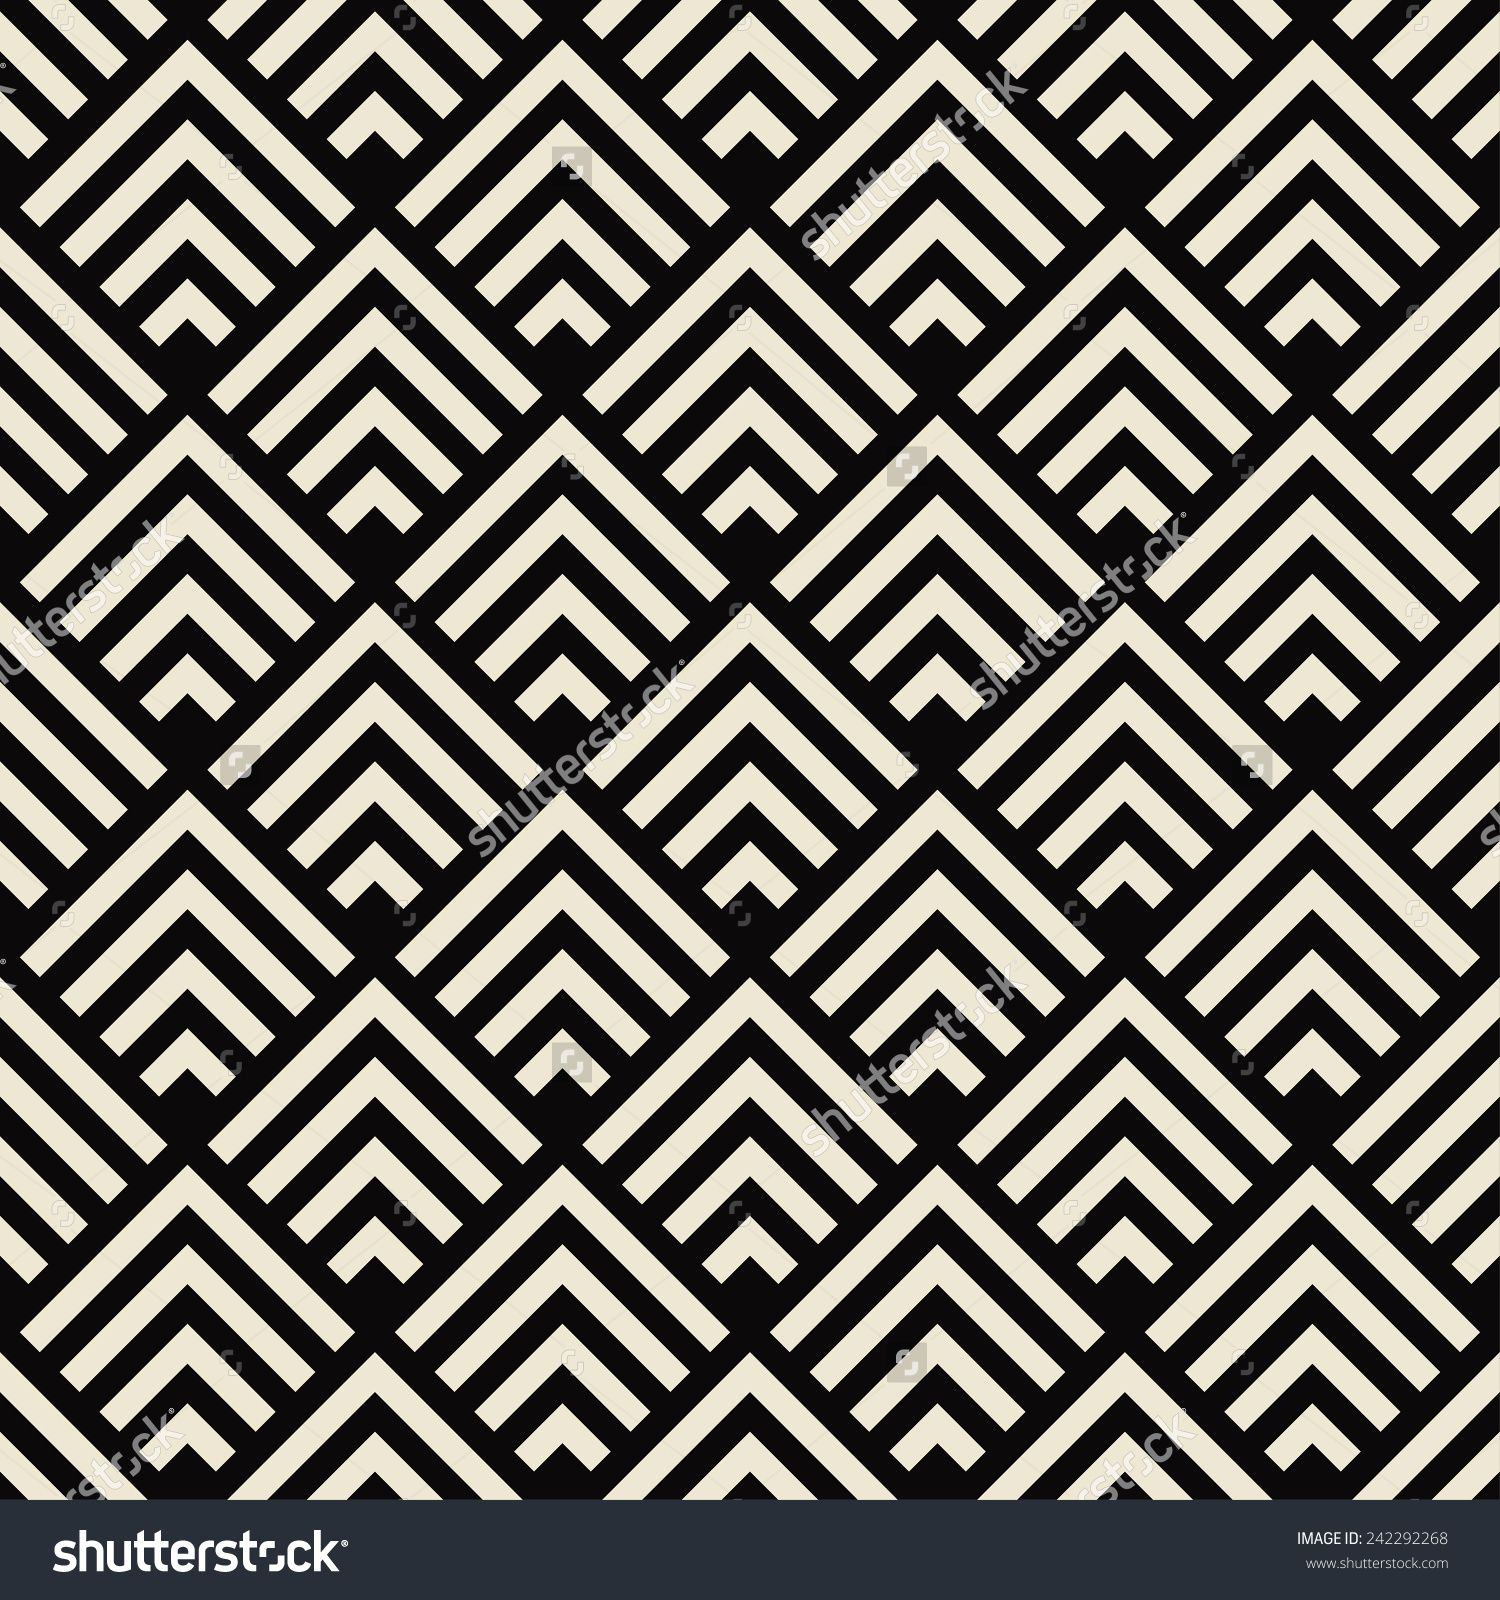 Art Deco Black And White Texture. Seamless Geometric ...